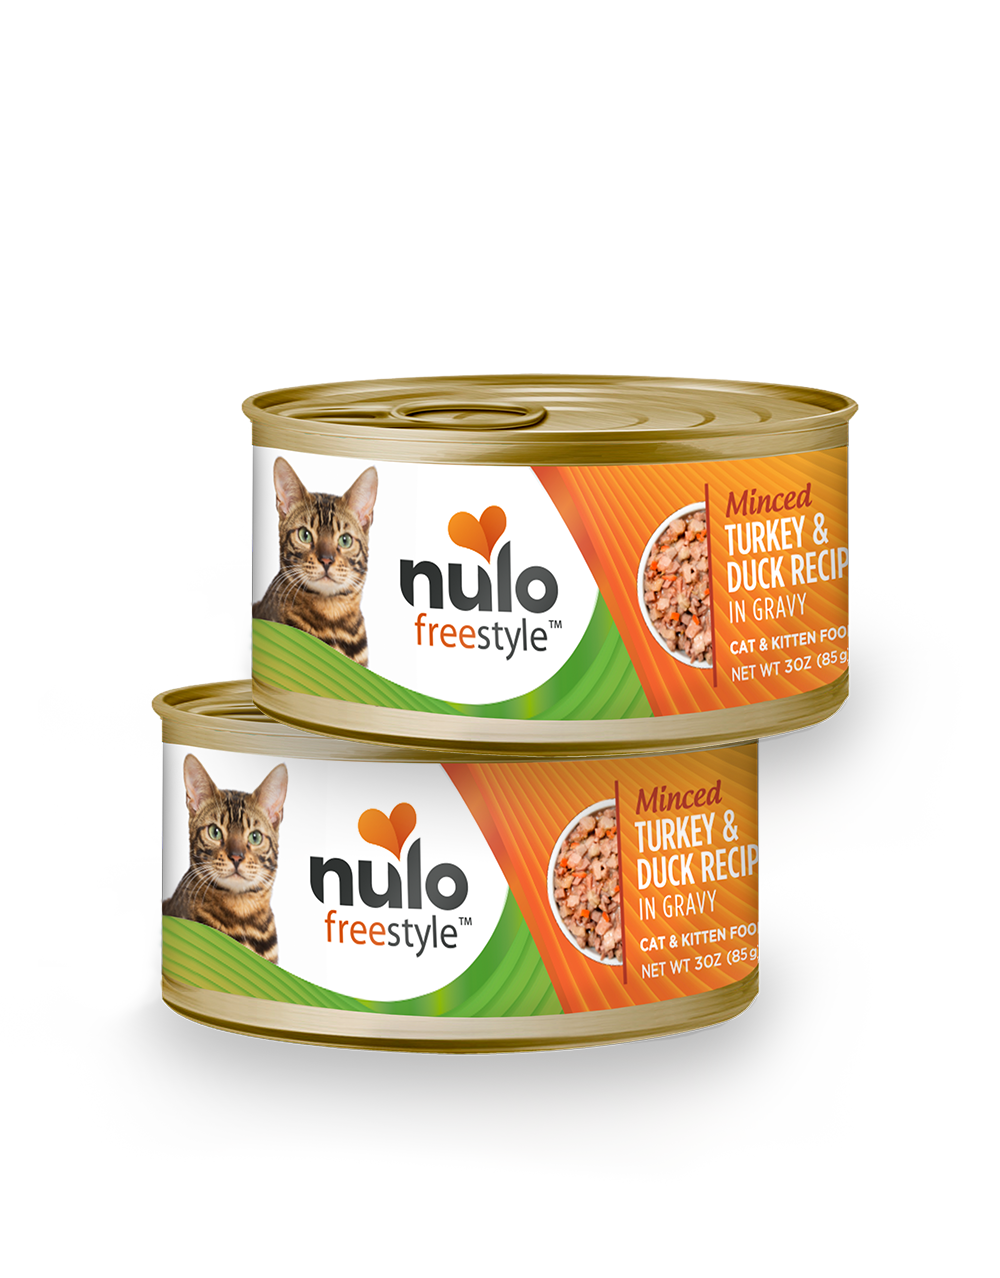 Nulo freestyle 3oz cat cans Turkey&Duck